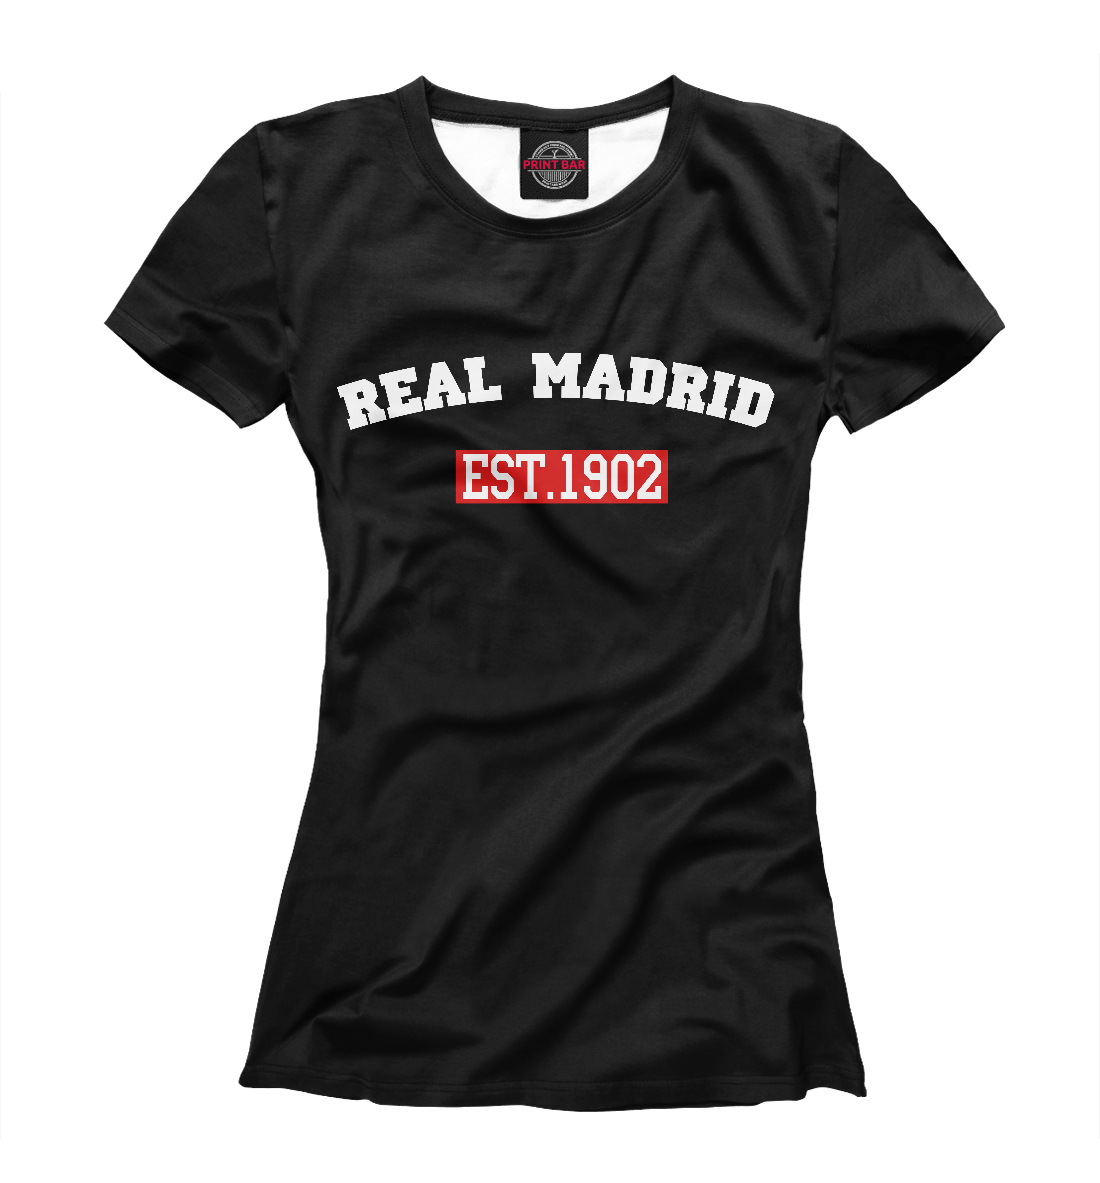 Купить FC Real Madrid Est. 1902, Printbar, Футболки, REA-450829-fut-1